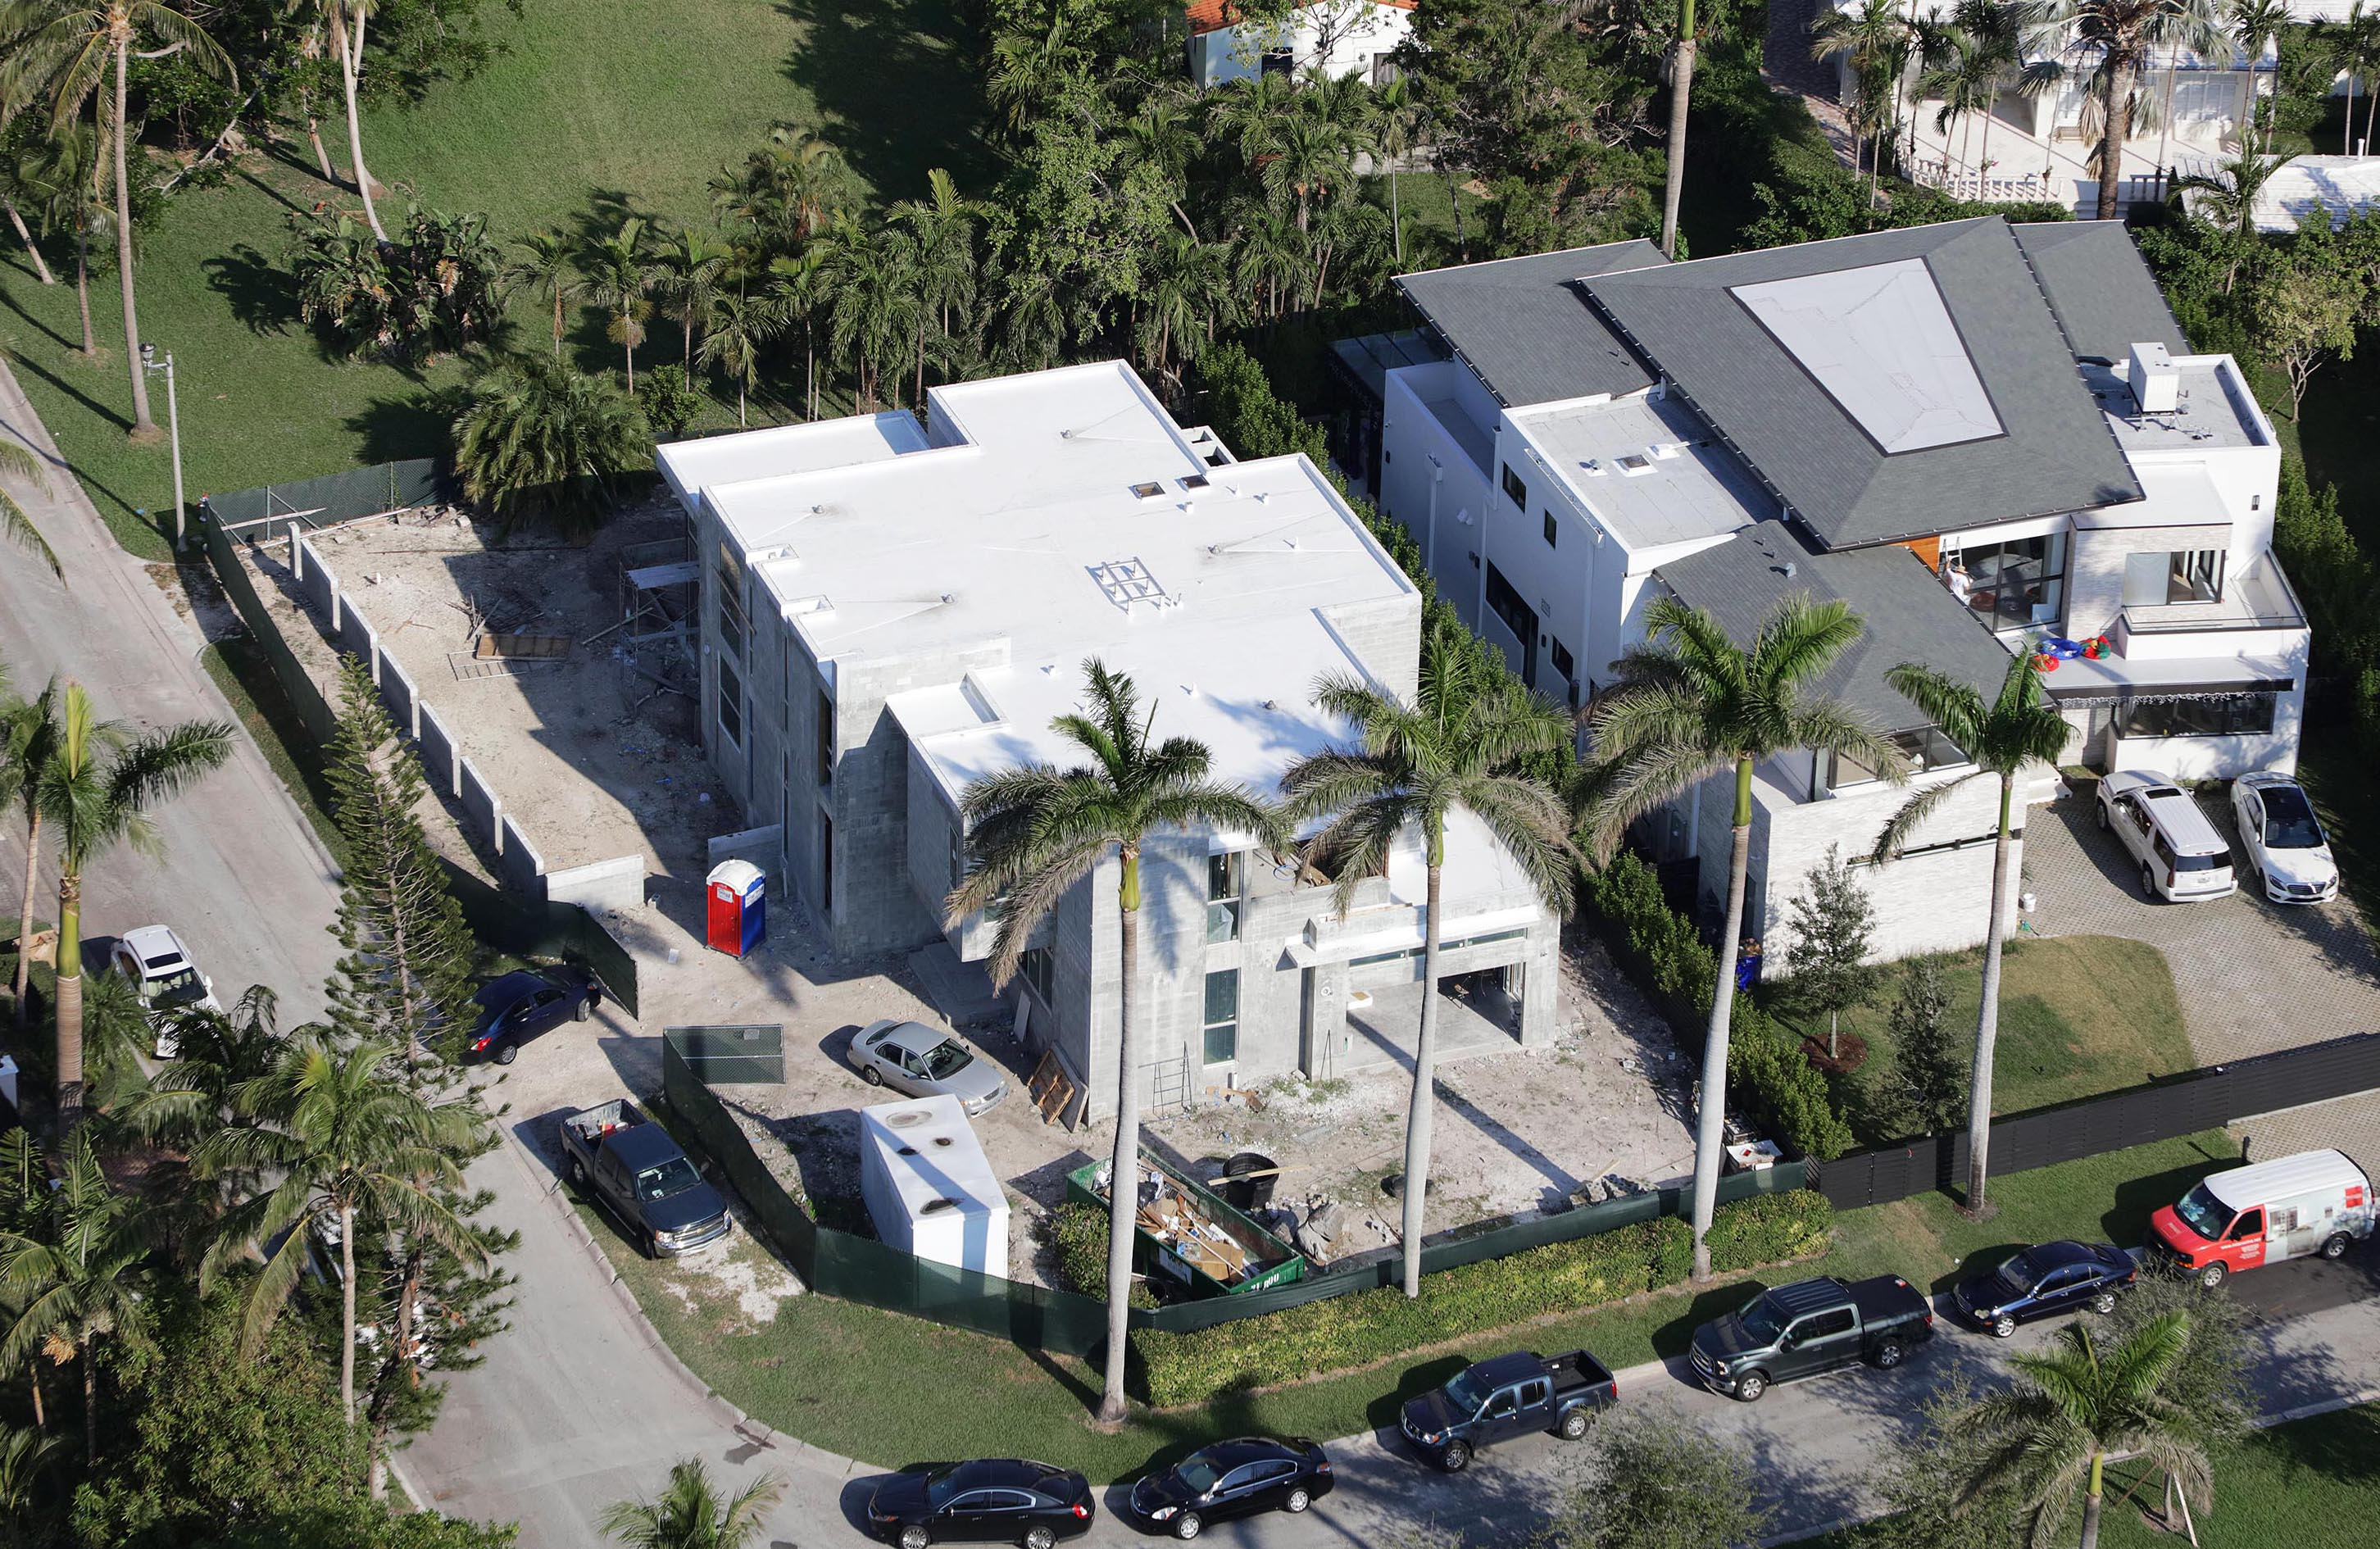 We developed the Architecturen of the 77 Bal Harbour, Florida